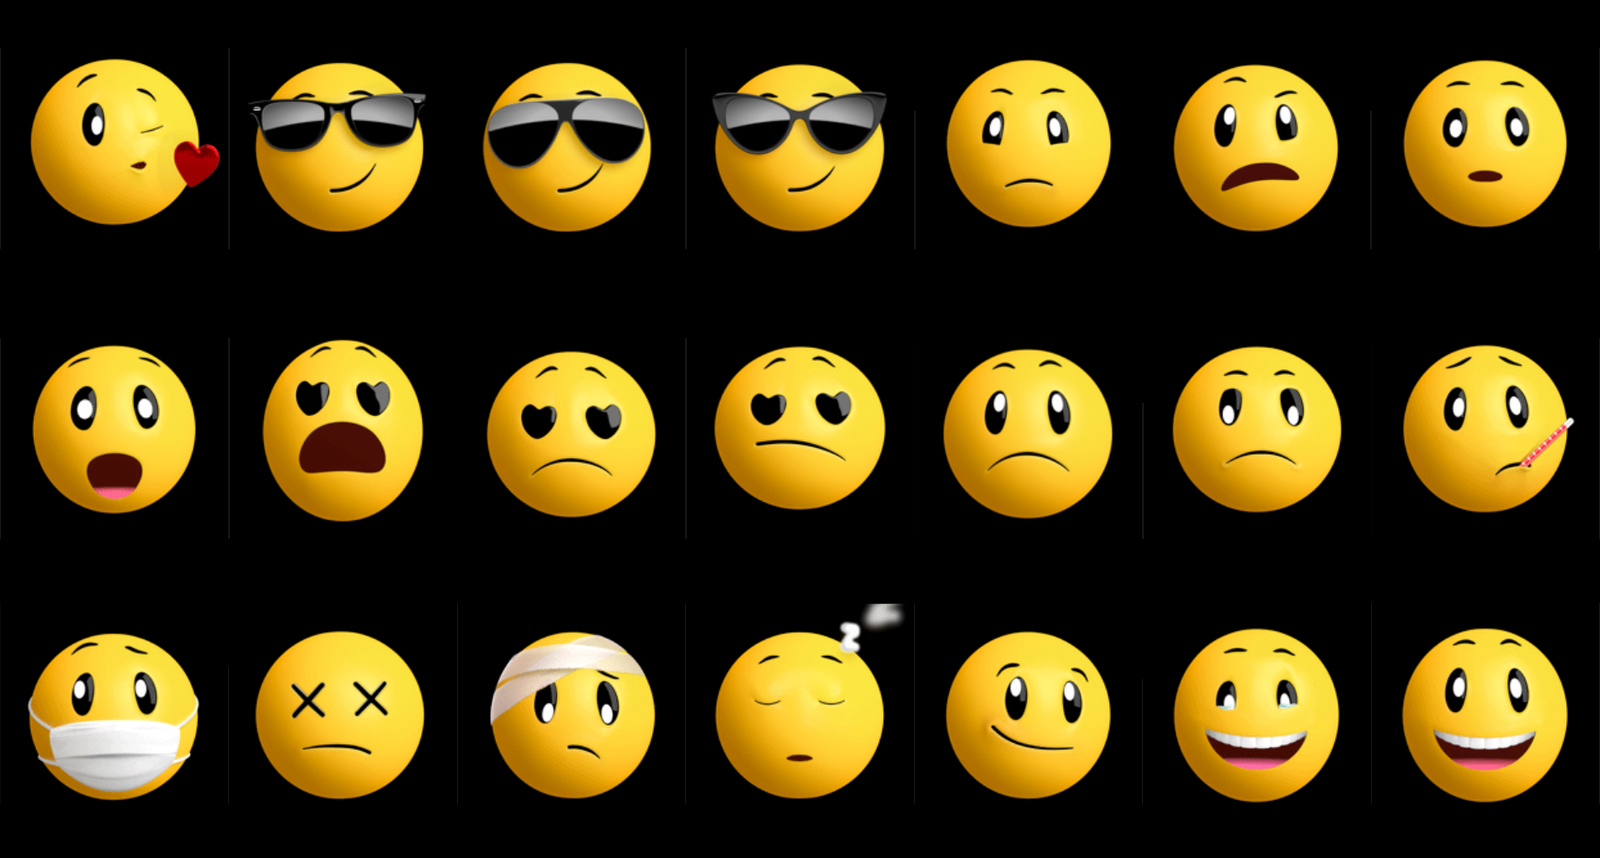 watchOS 2 new animated emoji smileys